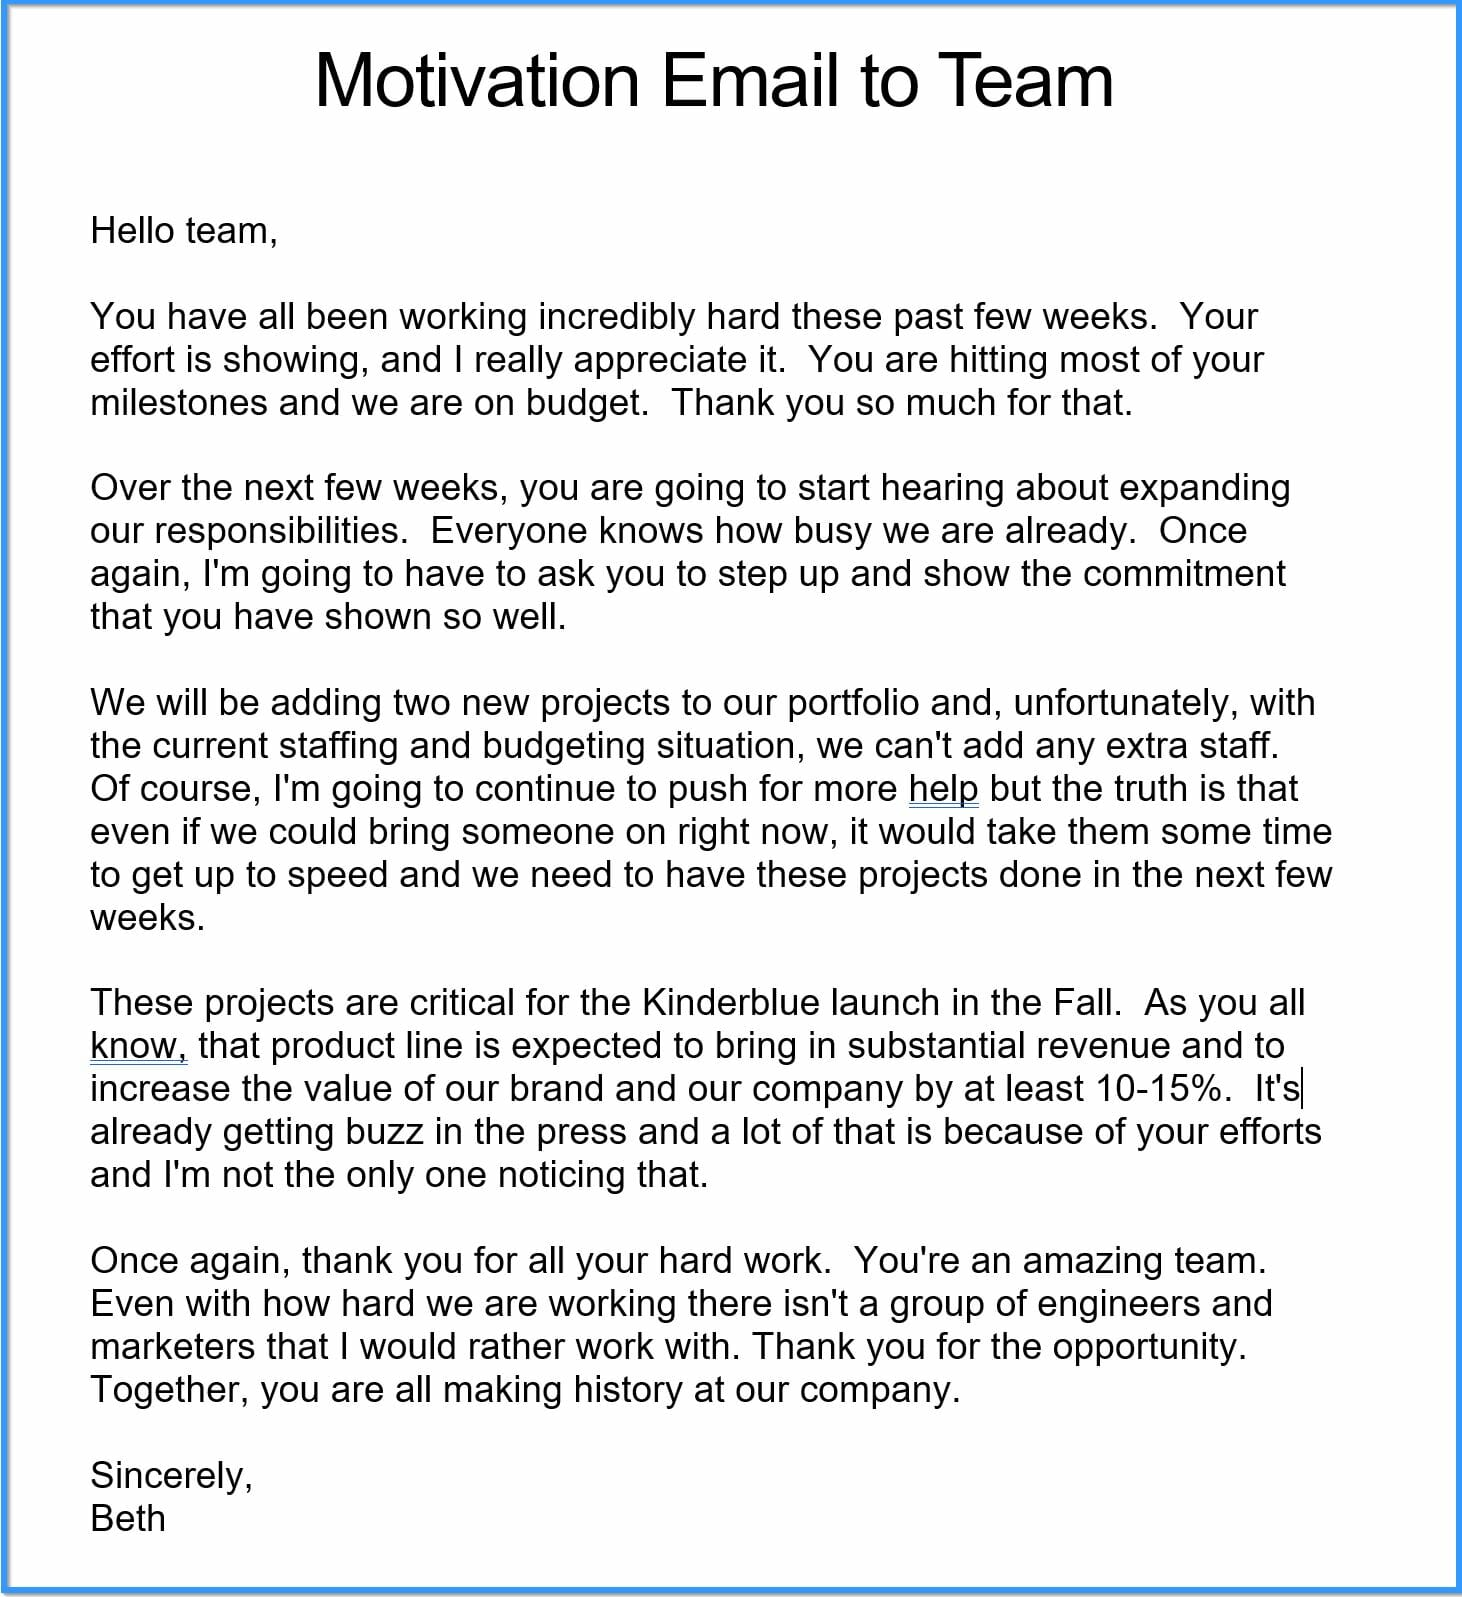 Motivation Email to Team